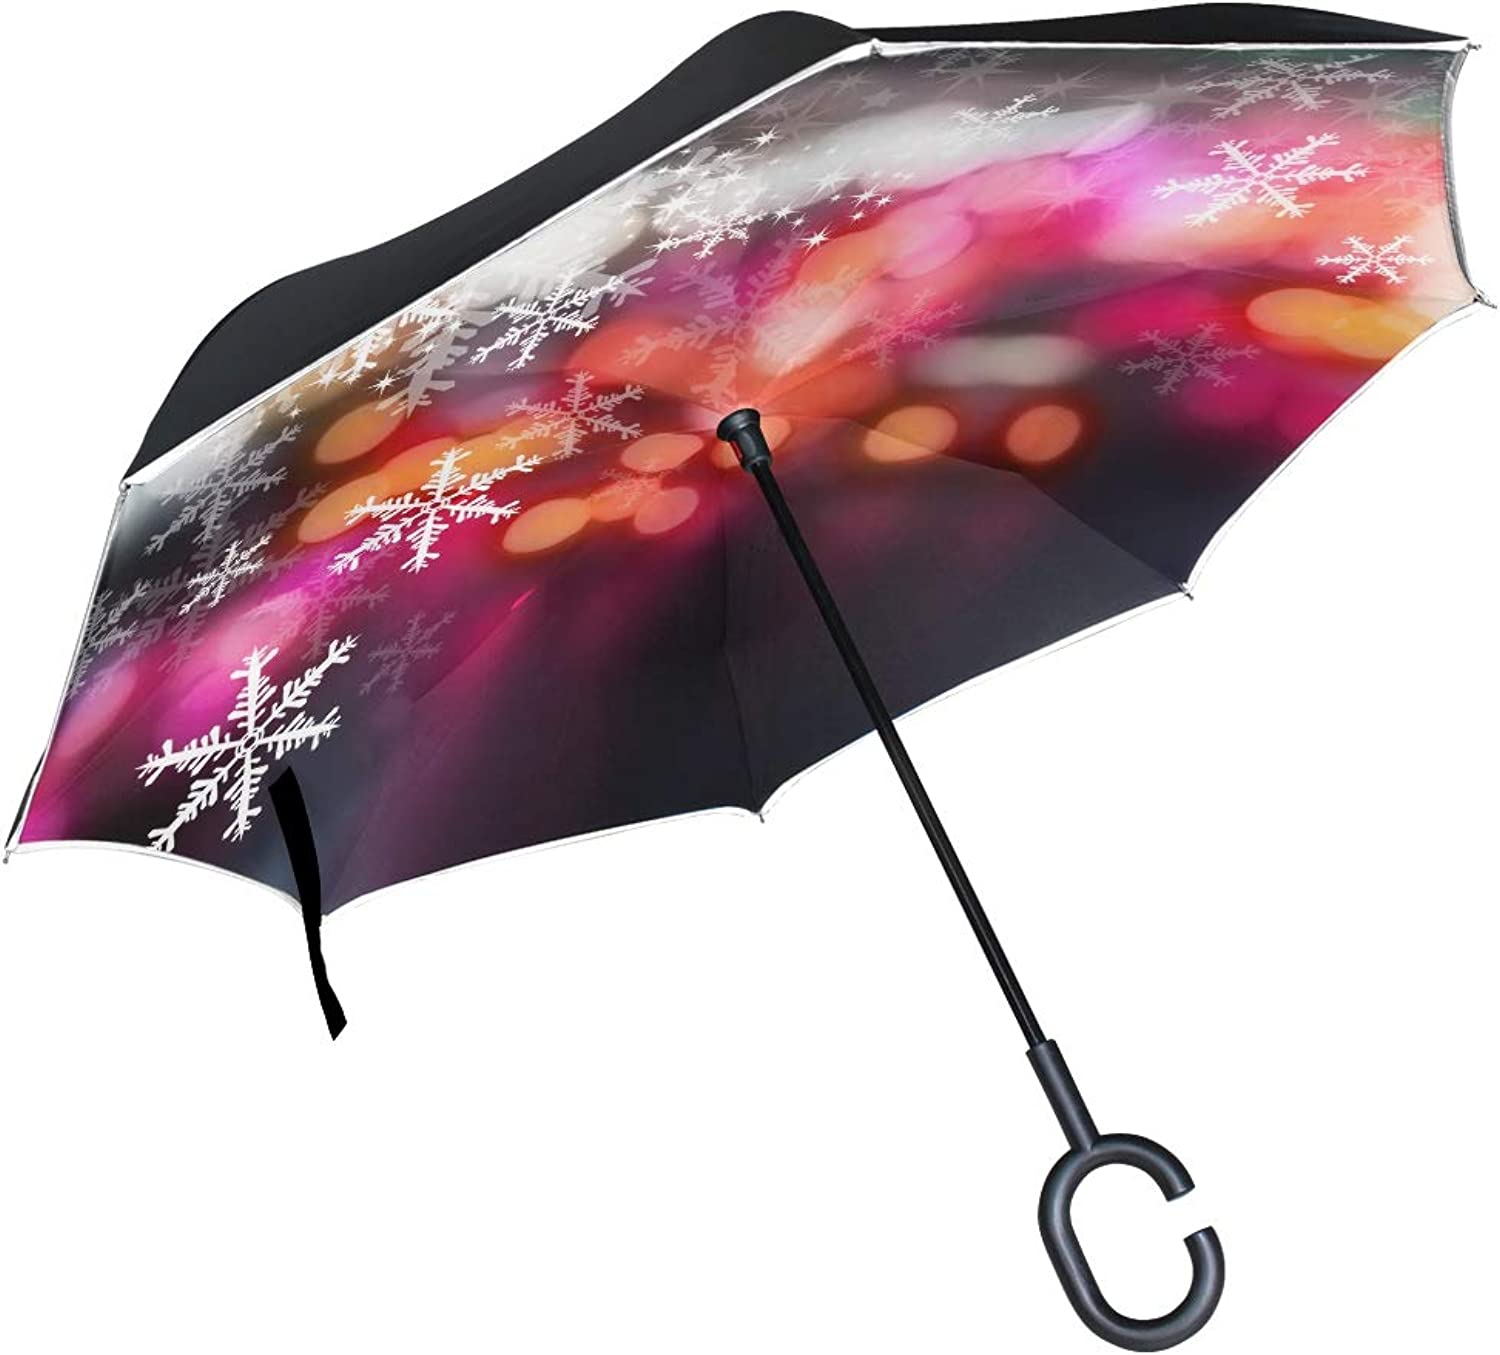 Double Layer Ingreened Christmas Design Snowflake On Bokeh Umbrellas Reverse Folding Umbrella Windproof Uv Predection Big Straight Umbrella for Car Rain Outdoor with CShaped Handle